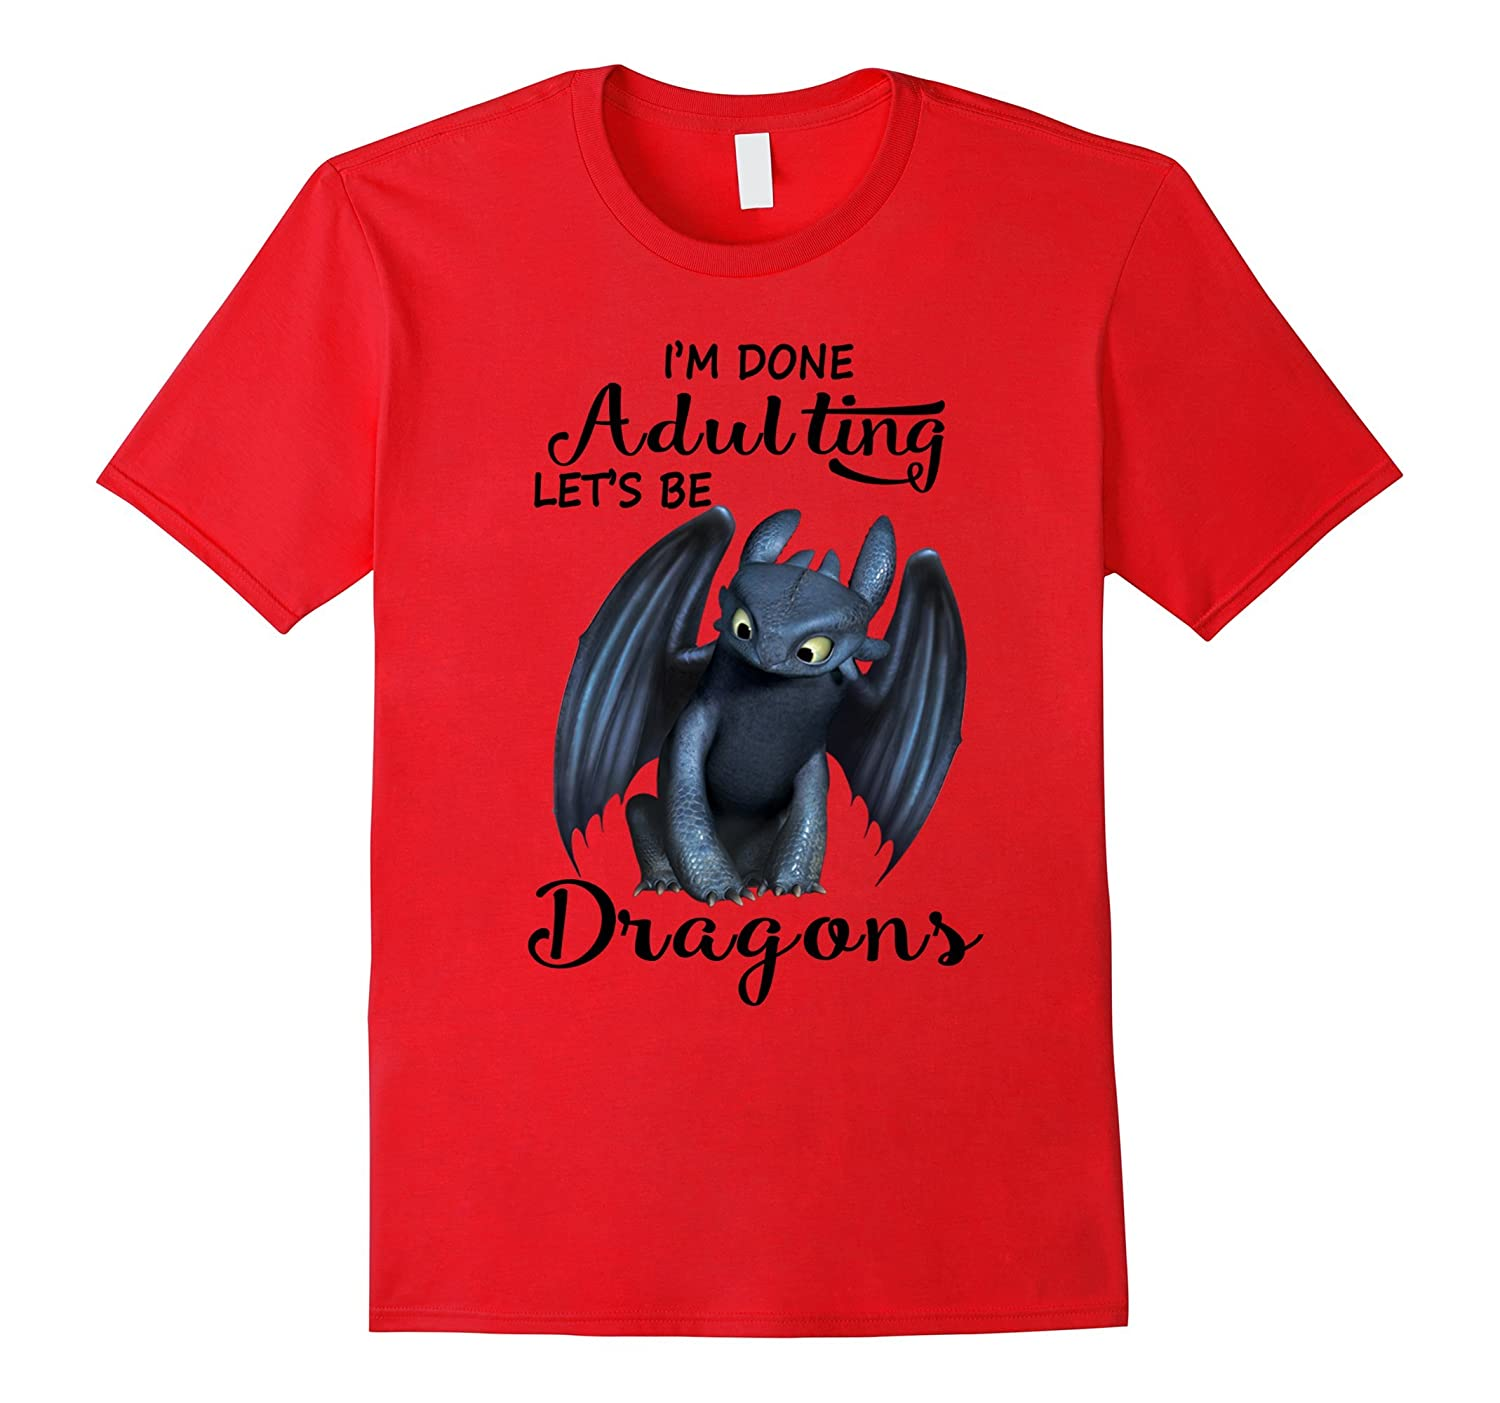 Im done adulting lets be dragons t shirt-RT